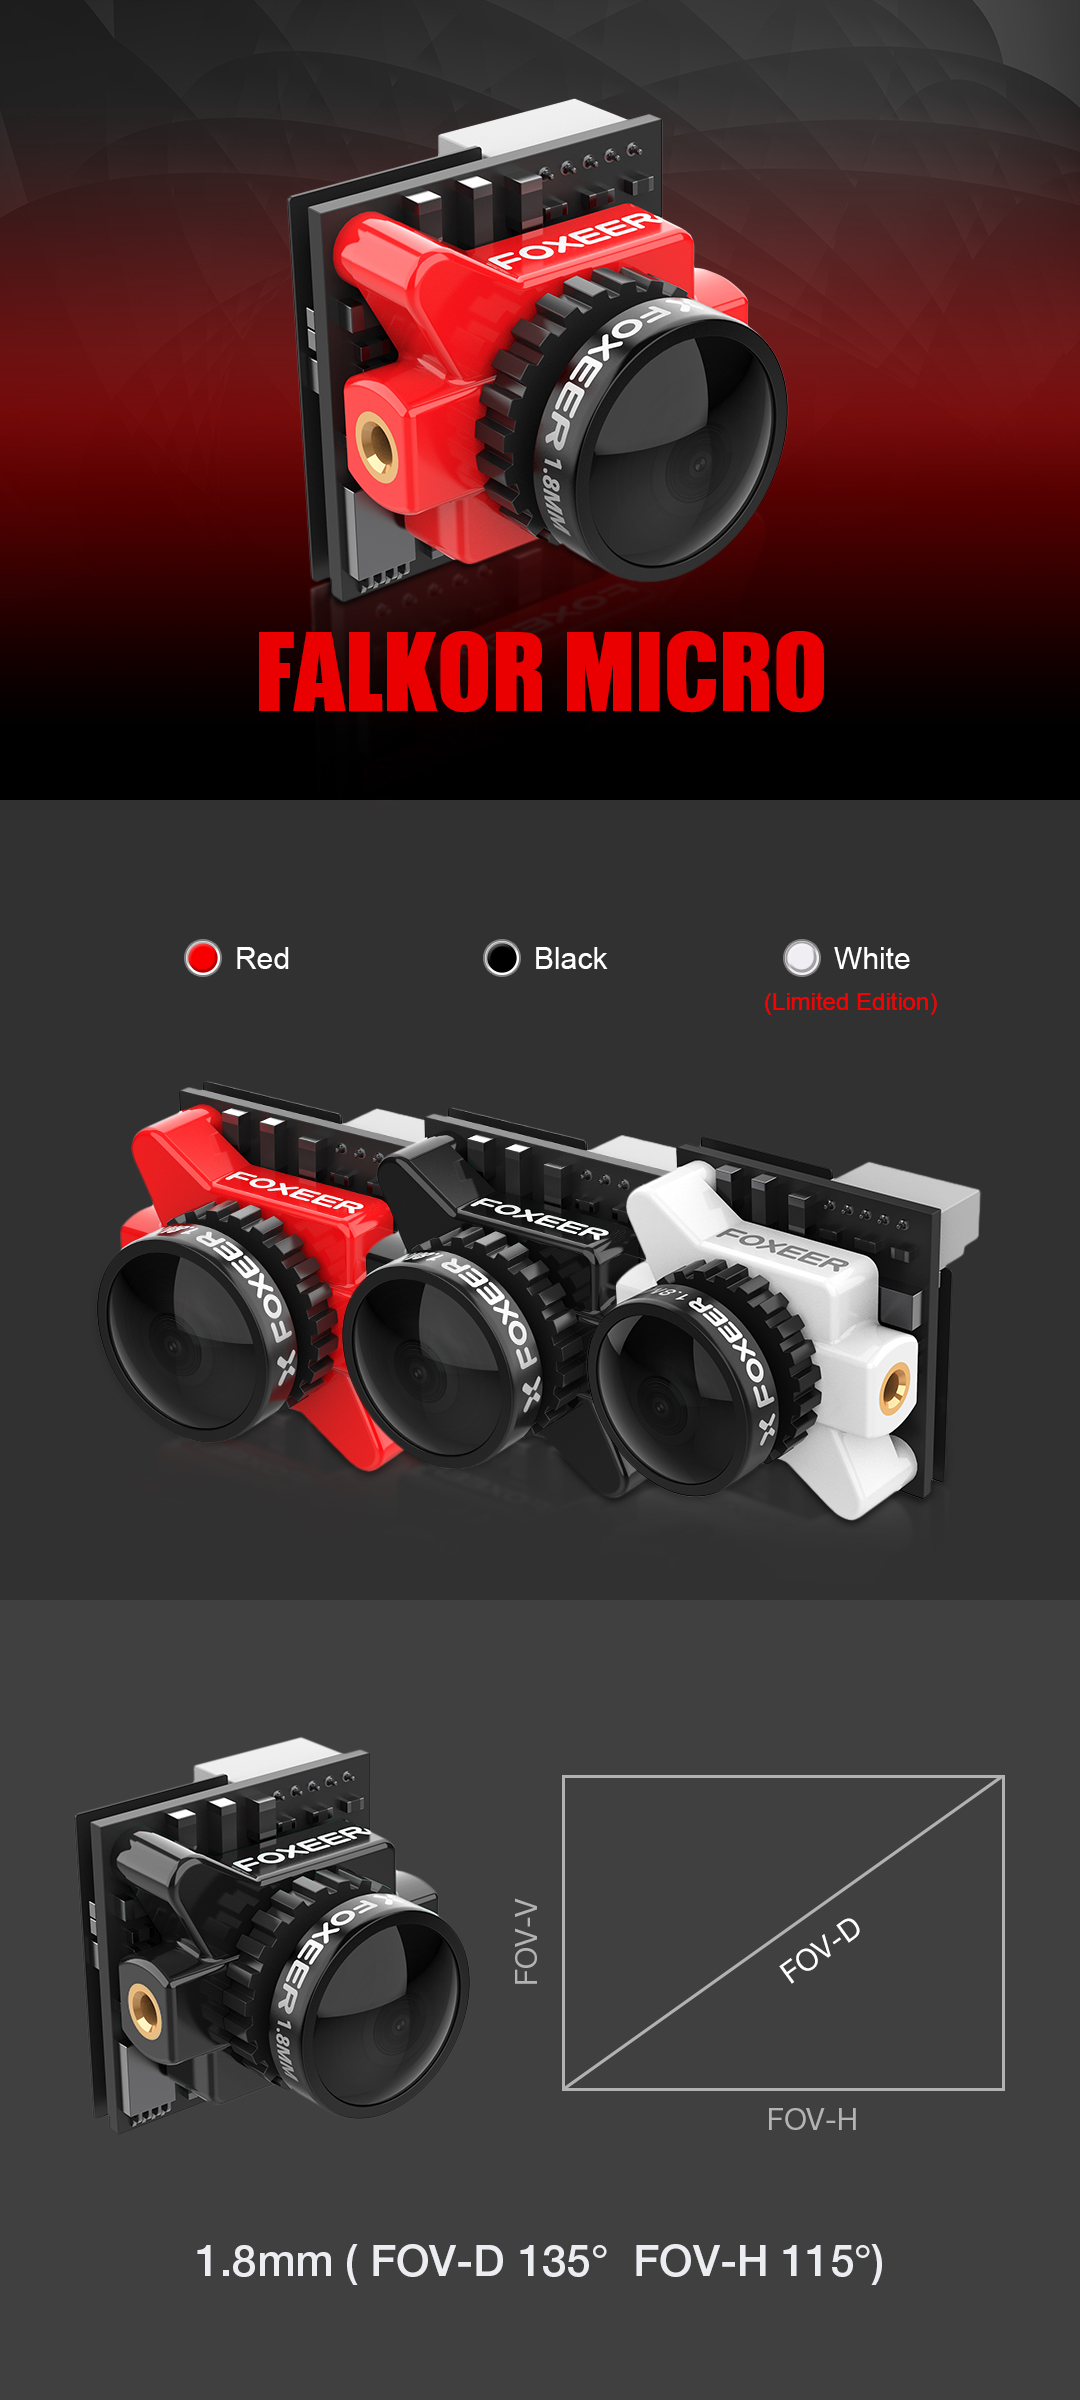 Foxeer Falkor Micro 1200tvl Fpv Camera 18mm Lens Gwdr Osd All Naze32 Wiring Diagram 1manual 1osd Board 1servo Cable To Cleartx Vtx Tbs Unify 12pin 1bracket